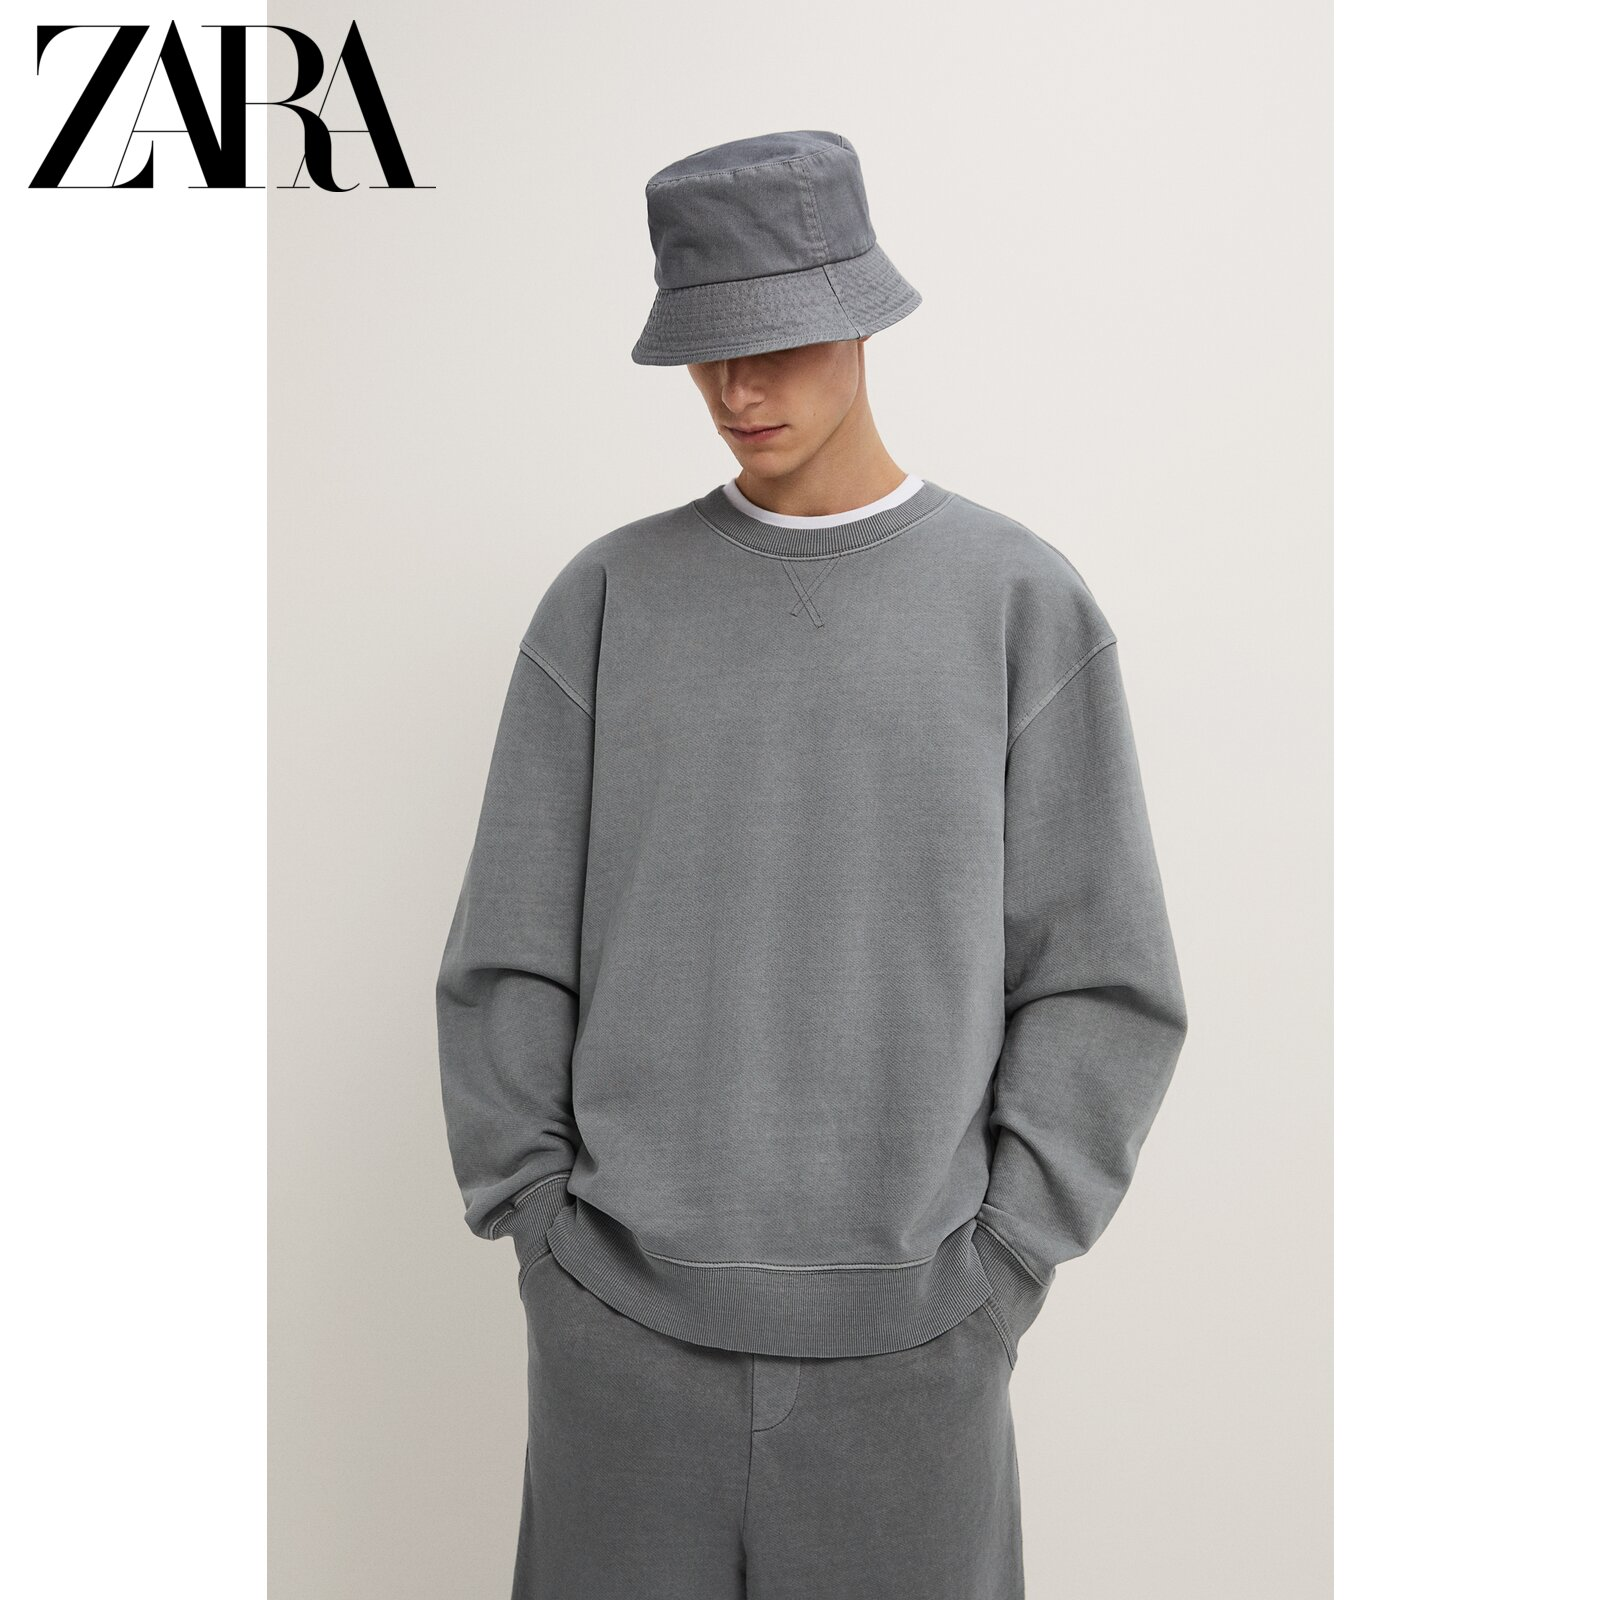 Zara new men's clothing wash effect loose sweater 01701306802